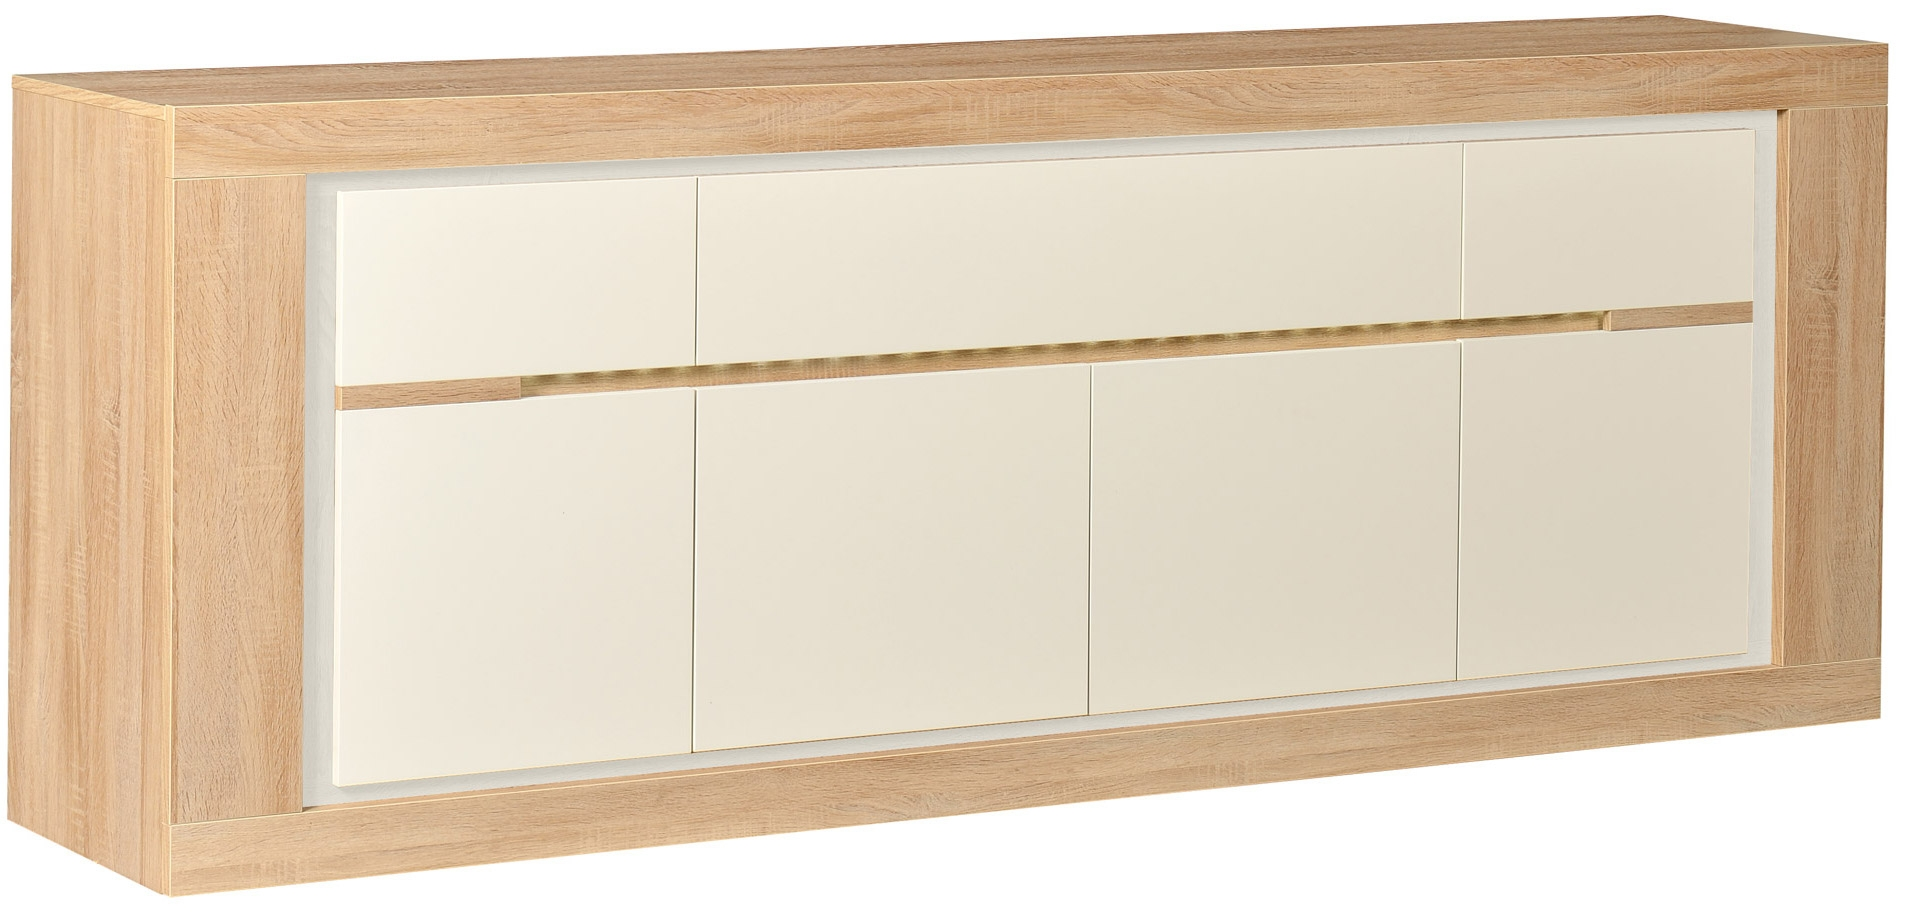 Buffet 4 portes ch ne et laque blanc clairage leds season for Buffet chene clair